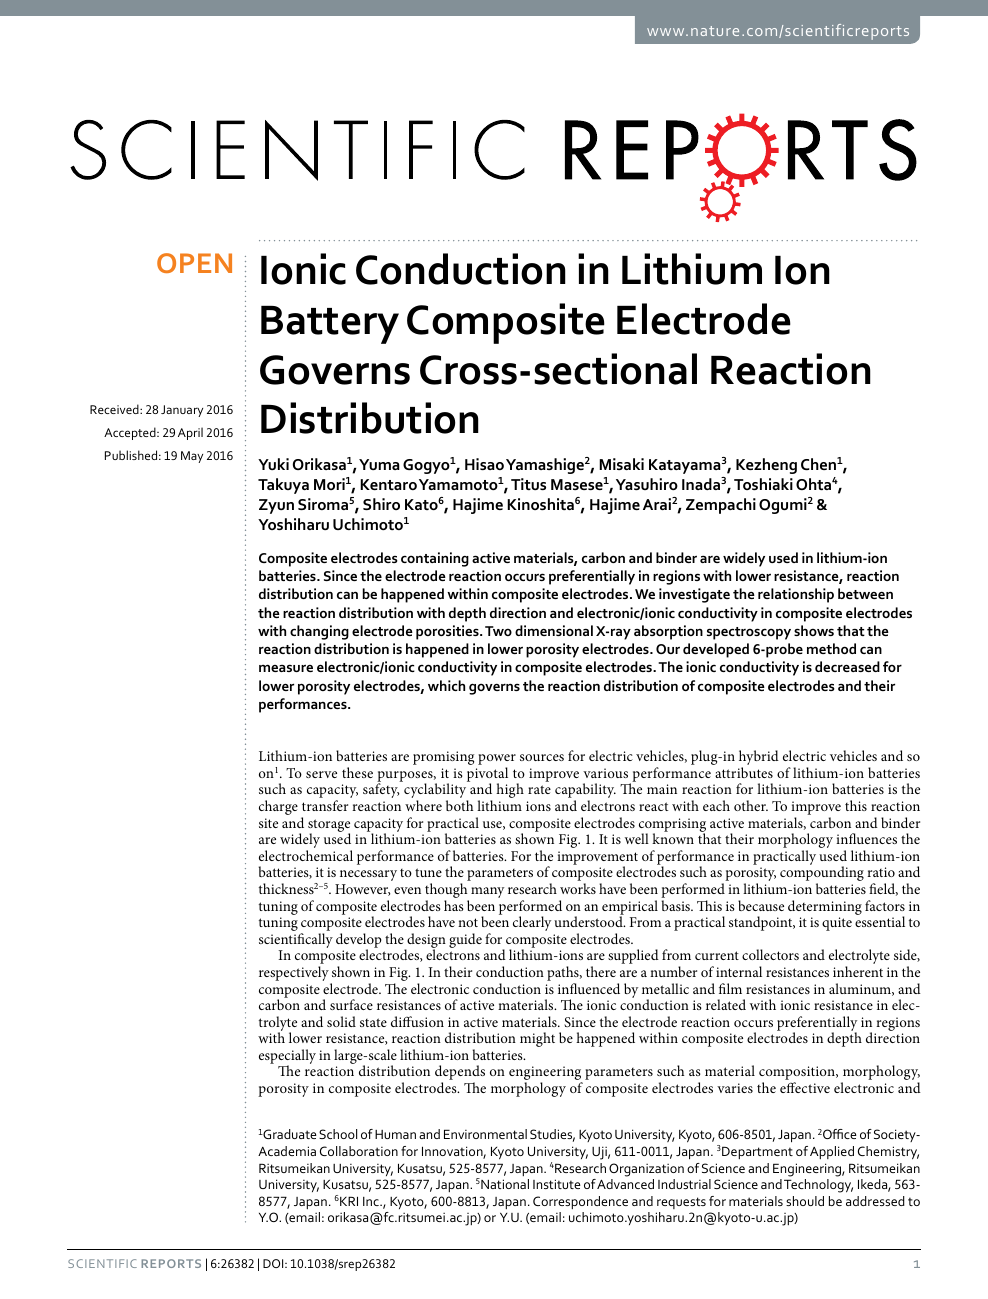 Ionic Conduction in Lithium Ion Battery Composite Electrode